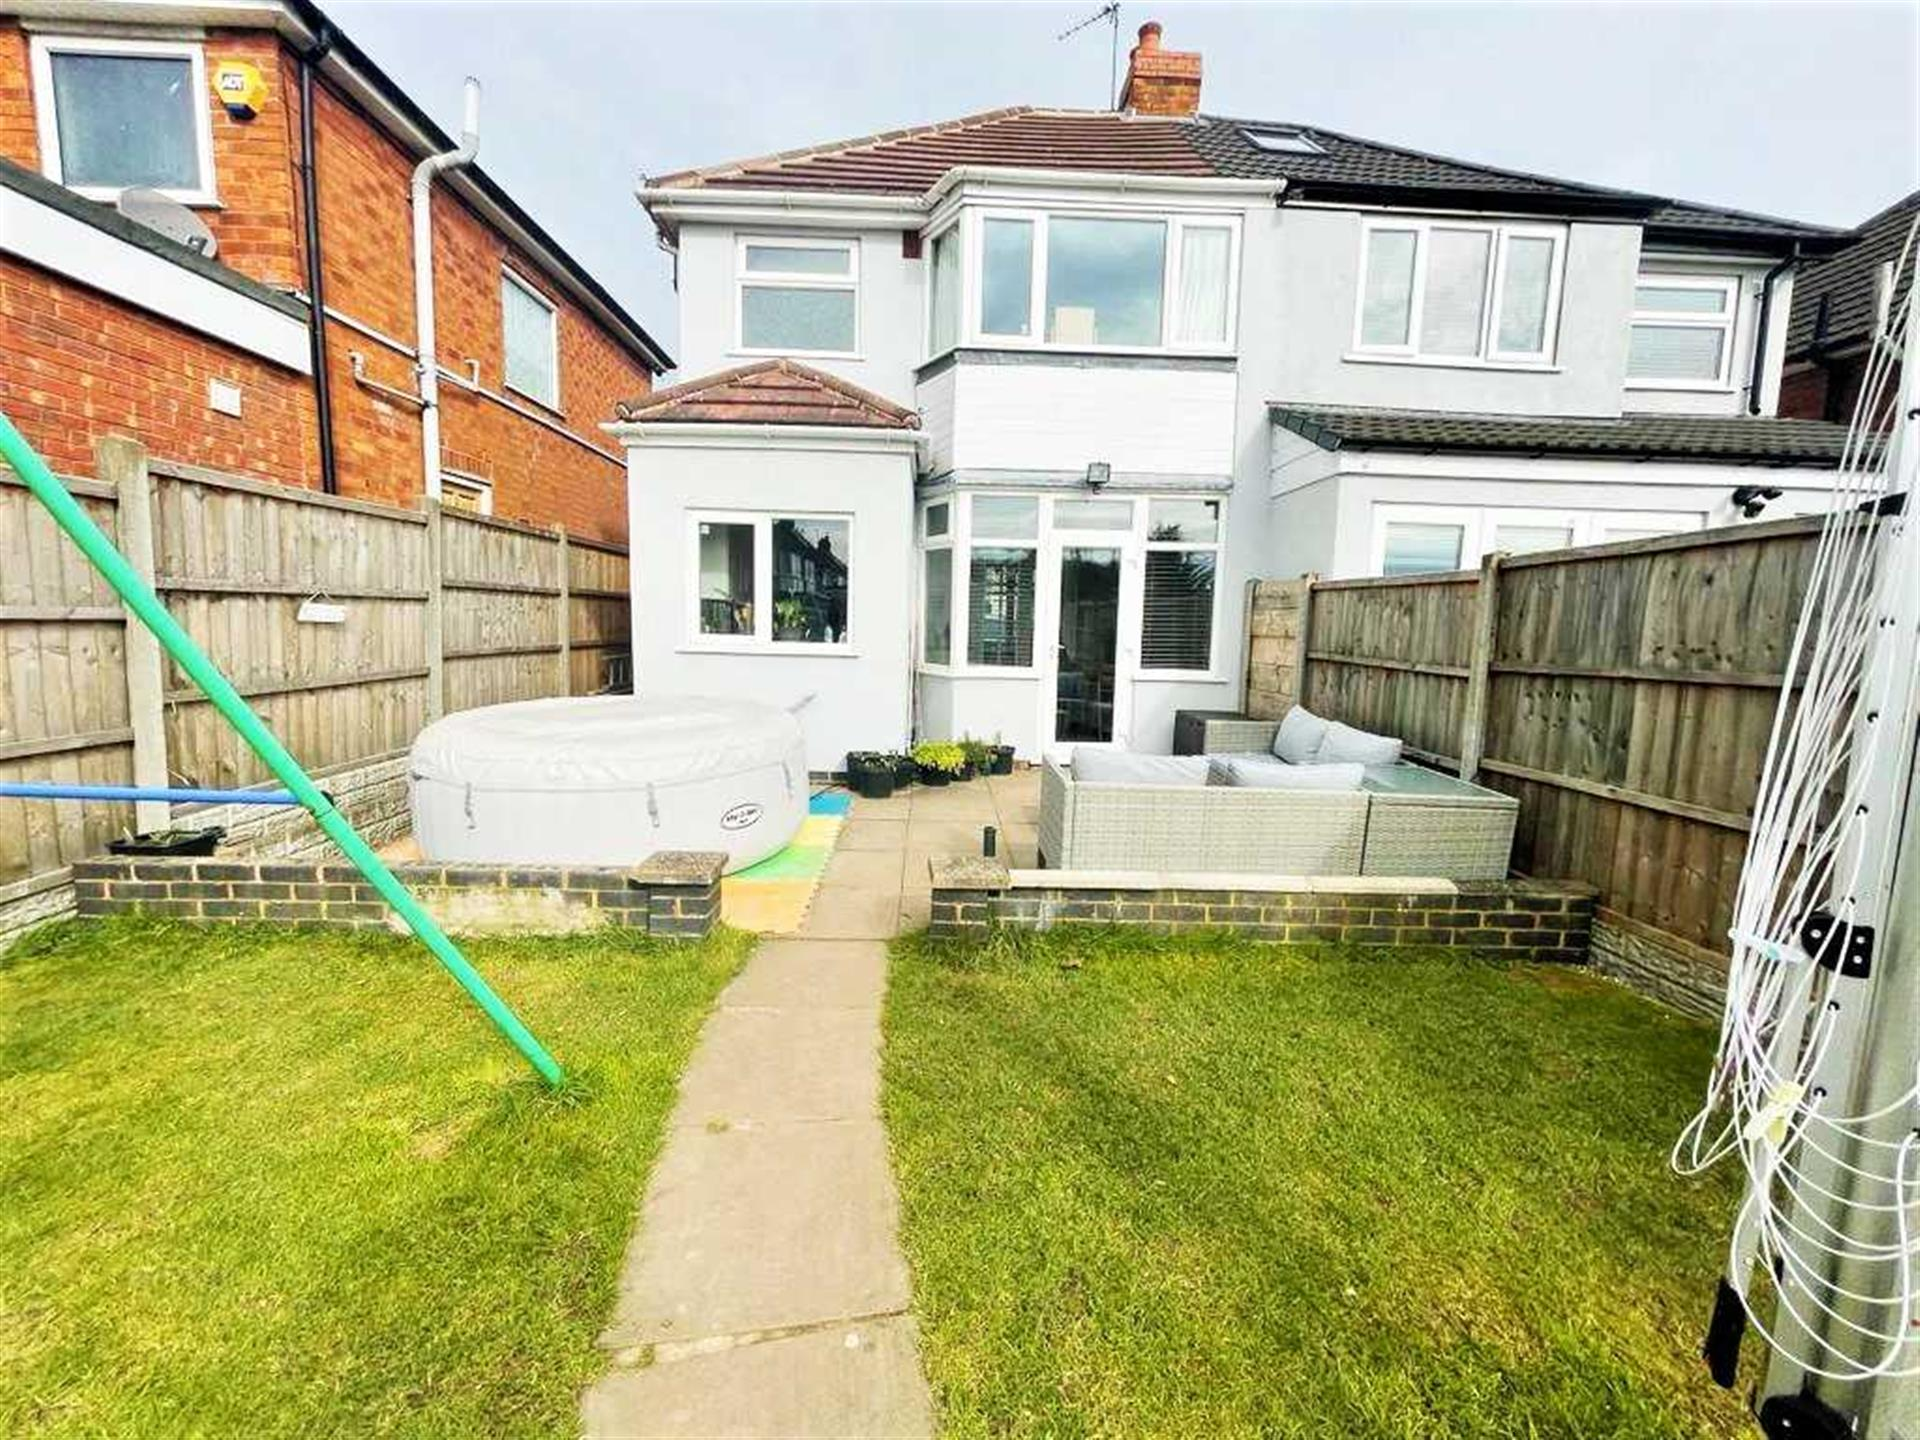 3 Bedroom Semi-detached House For Sale - Image 14